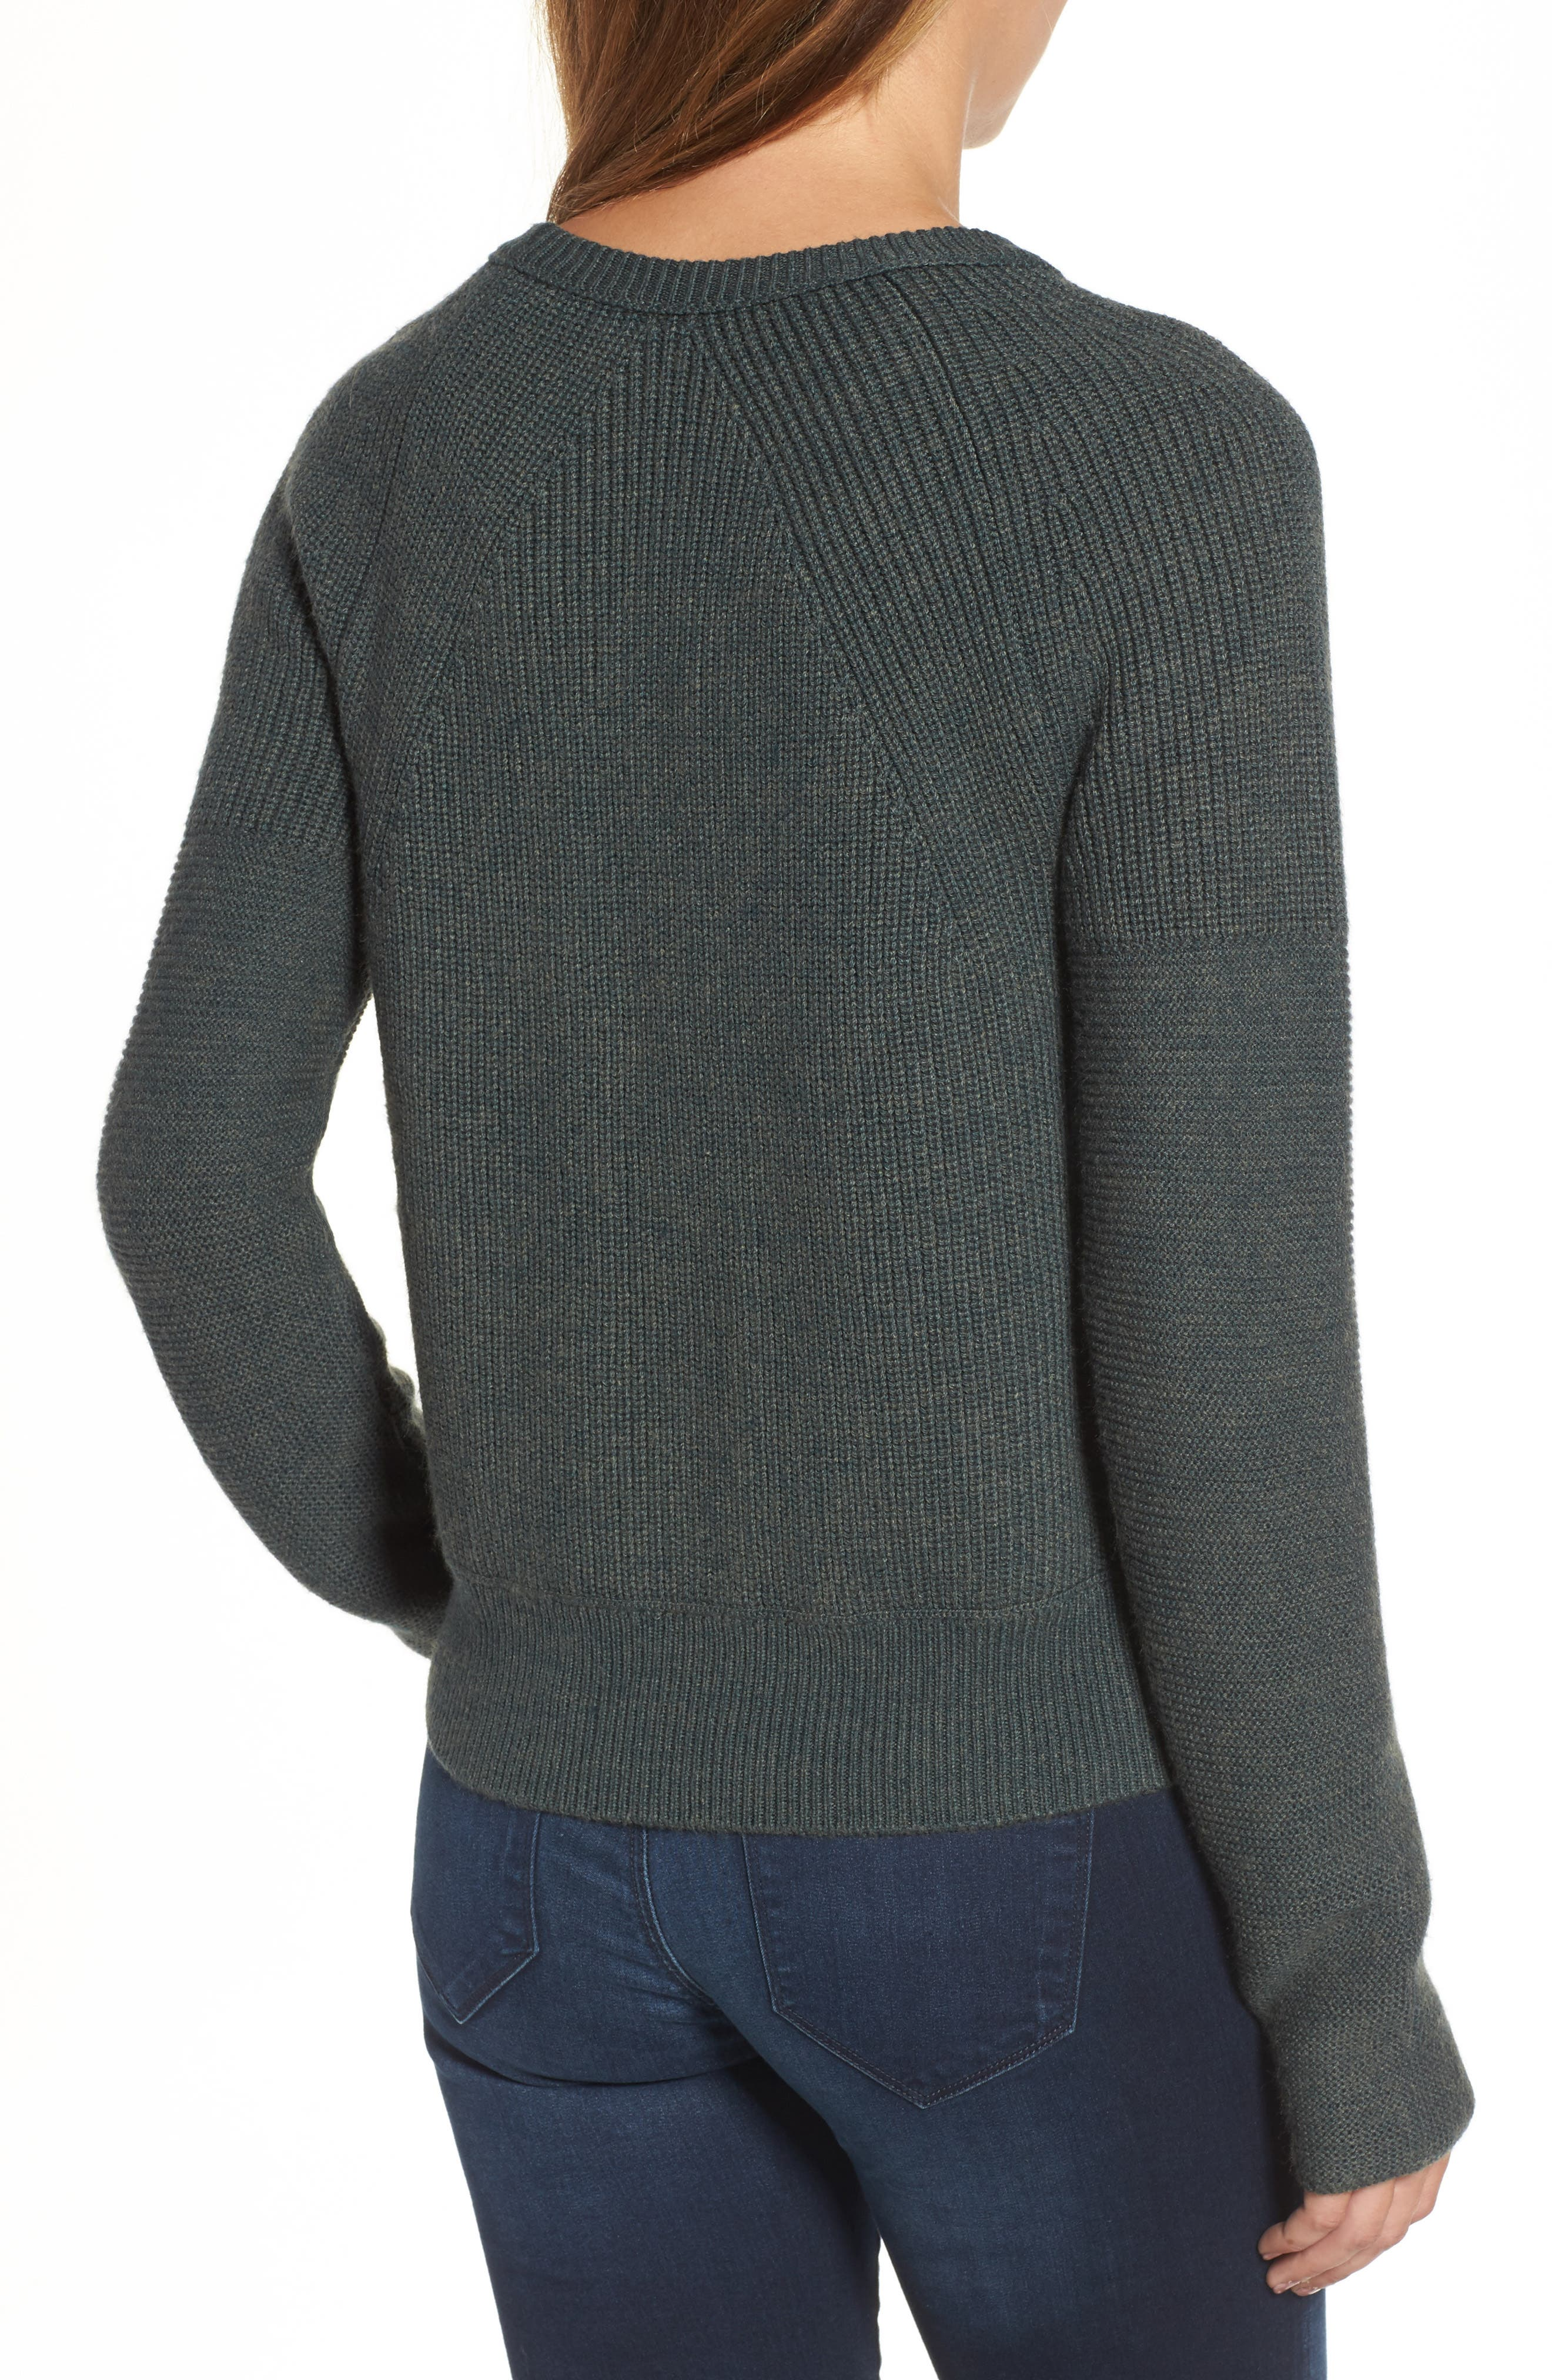 Engineered Stitch Sweater,                             Alternate thumbnail 3, color,                             Military